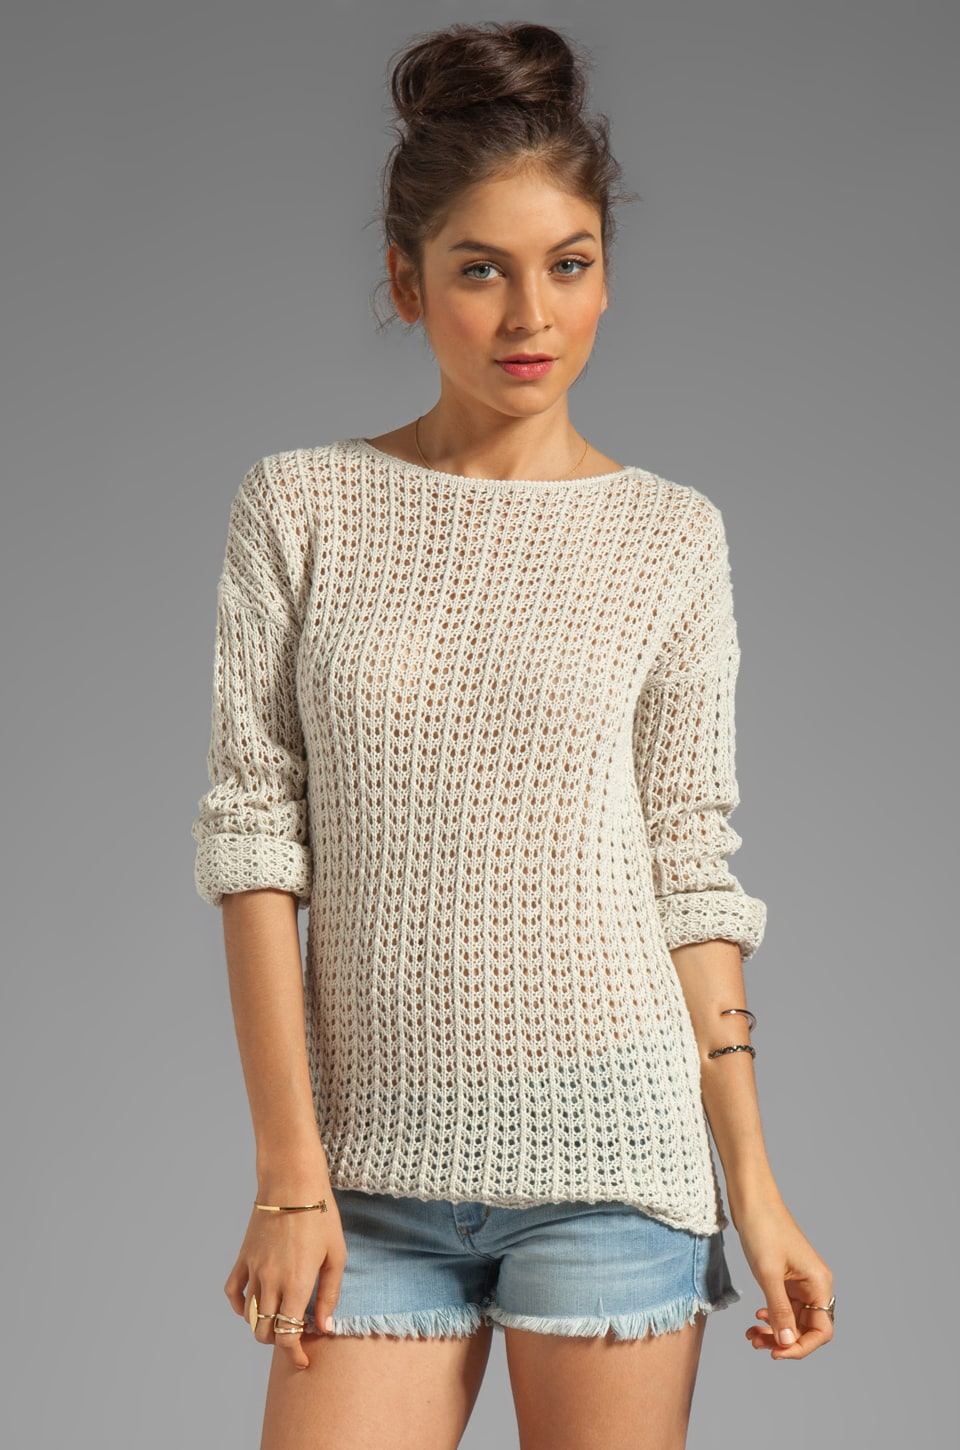 Autumn Cashmere Long Sleeve Open Stitch Sweater in Hemp